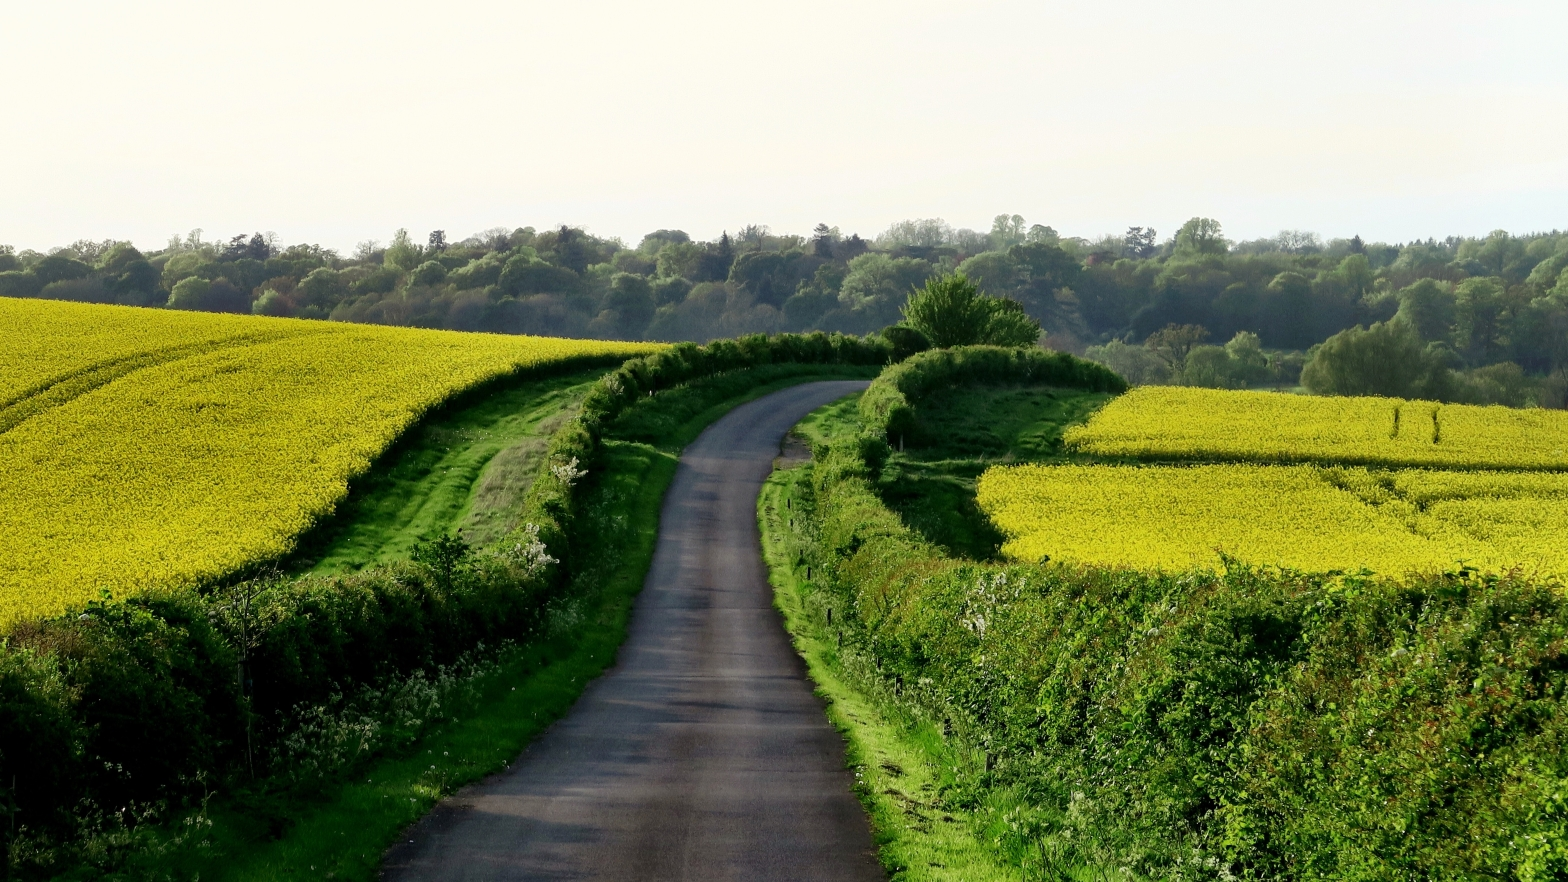 image is of a hedge-lined road winding through countryside